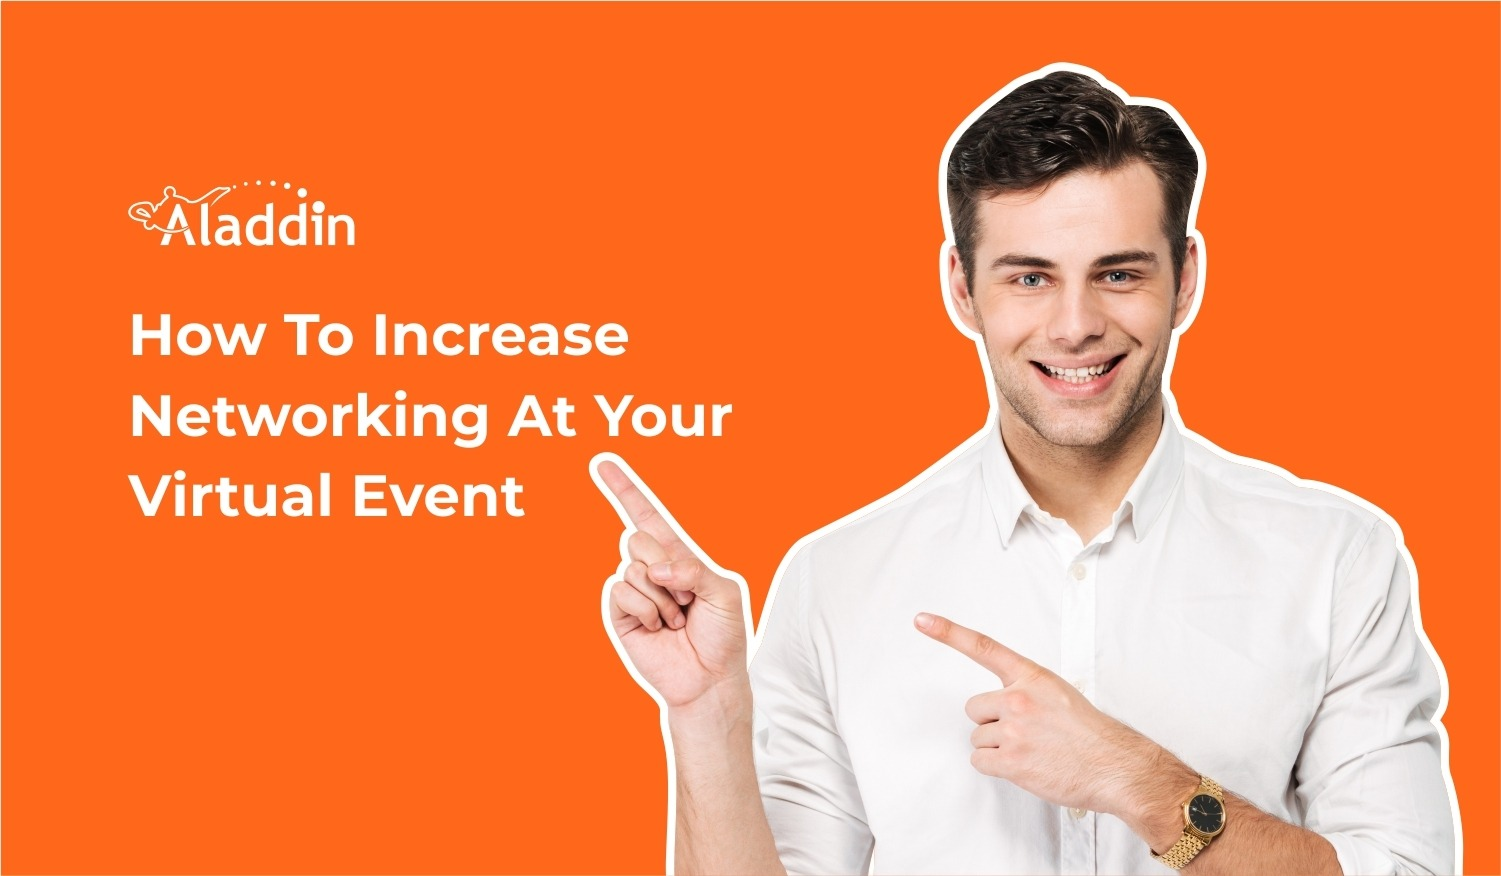 How To Increase Networking At Your Virtual Event